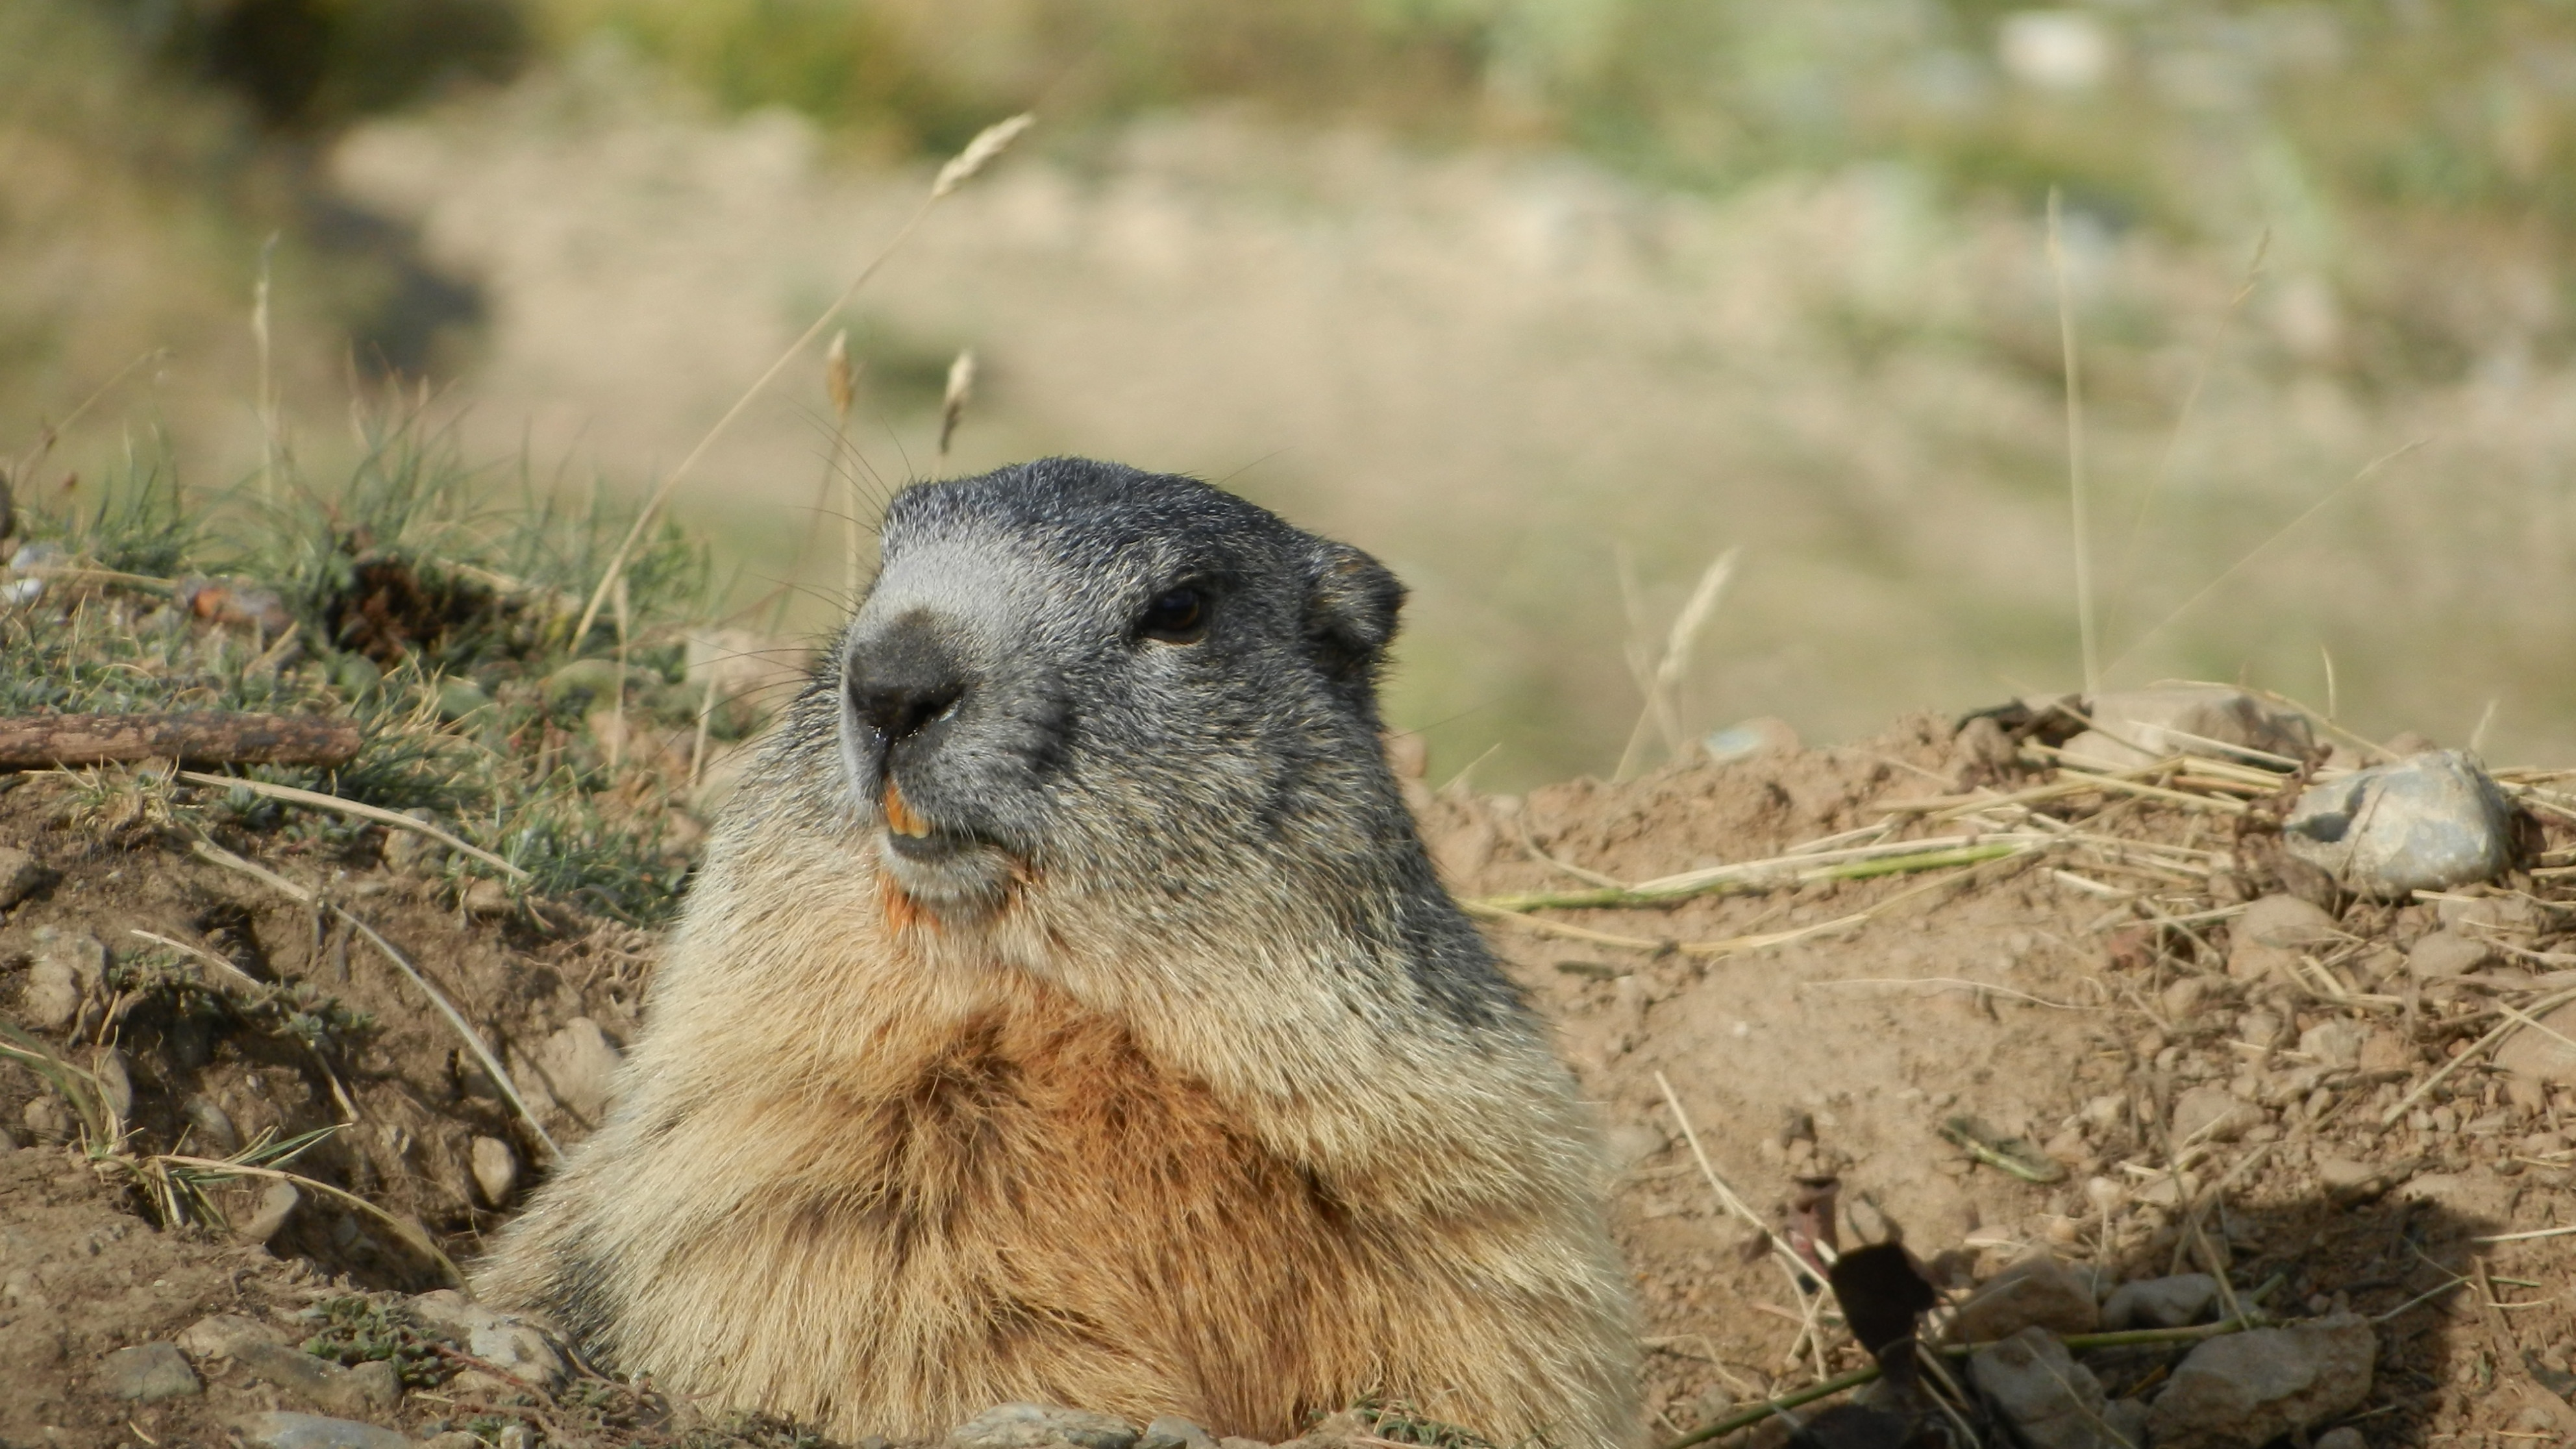 92248 download wallpaper Animals, Marmot, Alps, Rodent, Muzzle screensavers and pictures for free